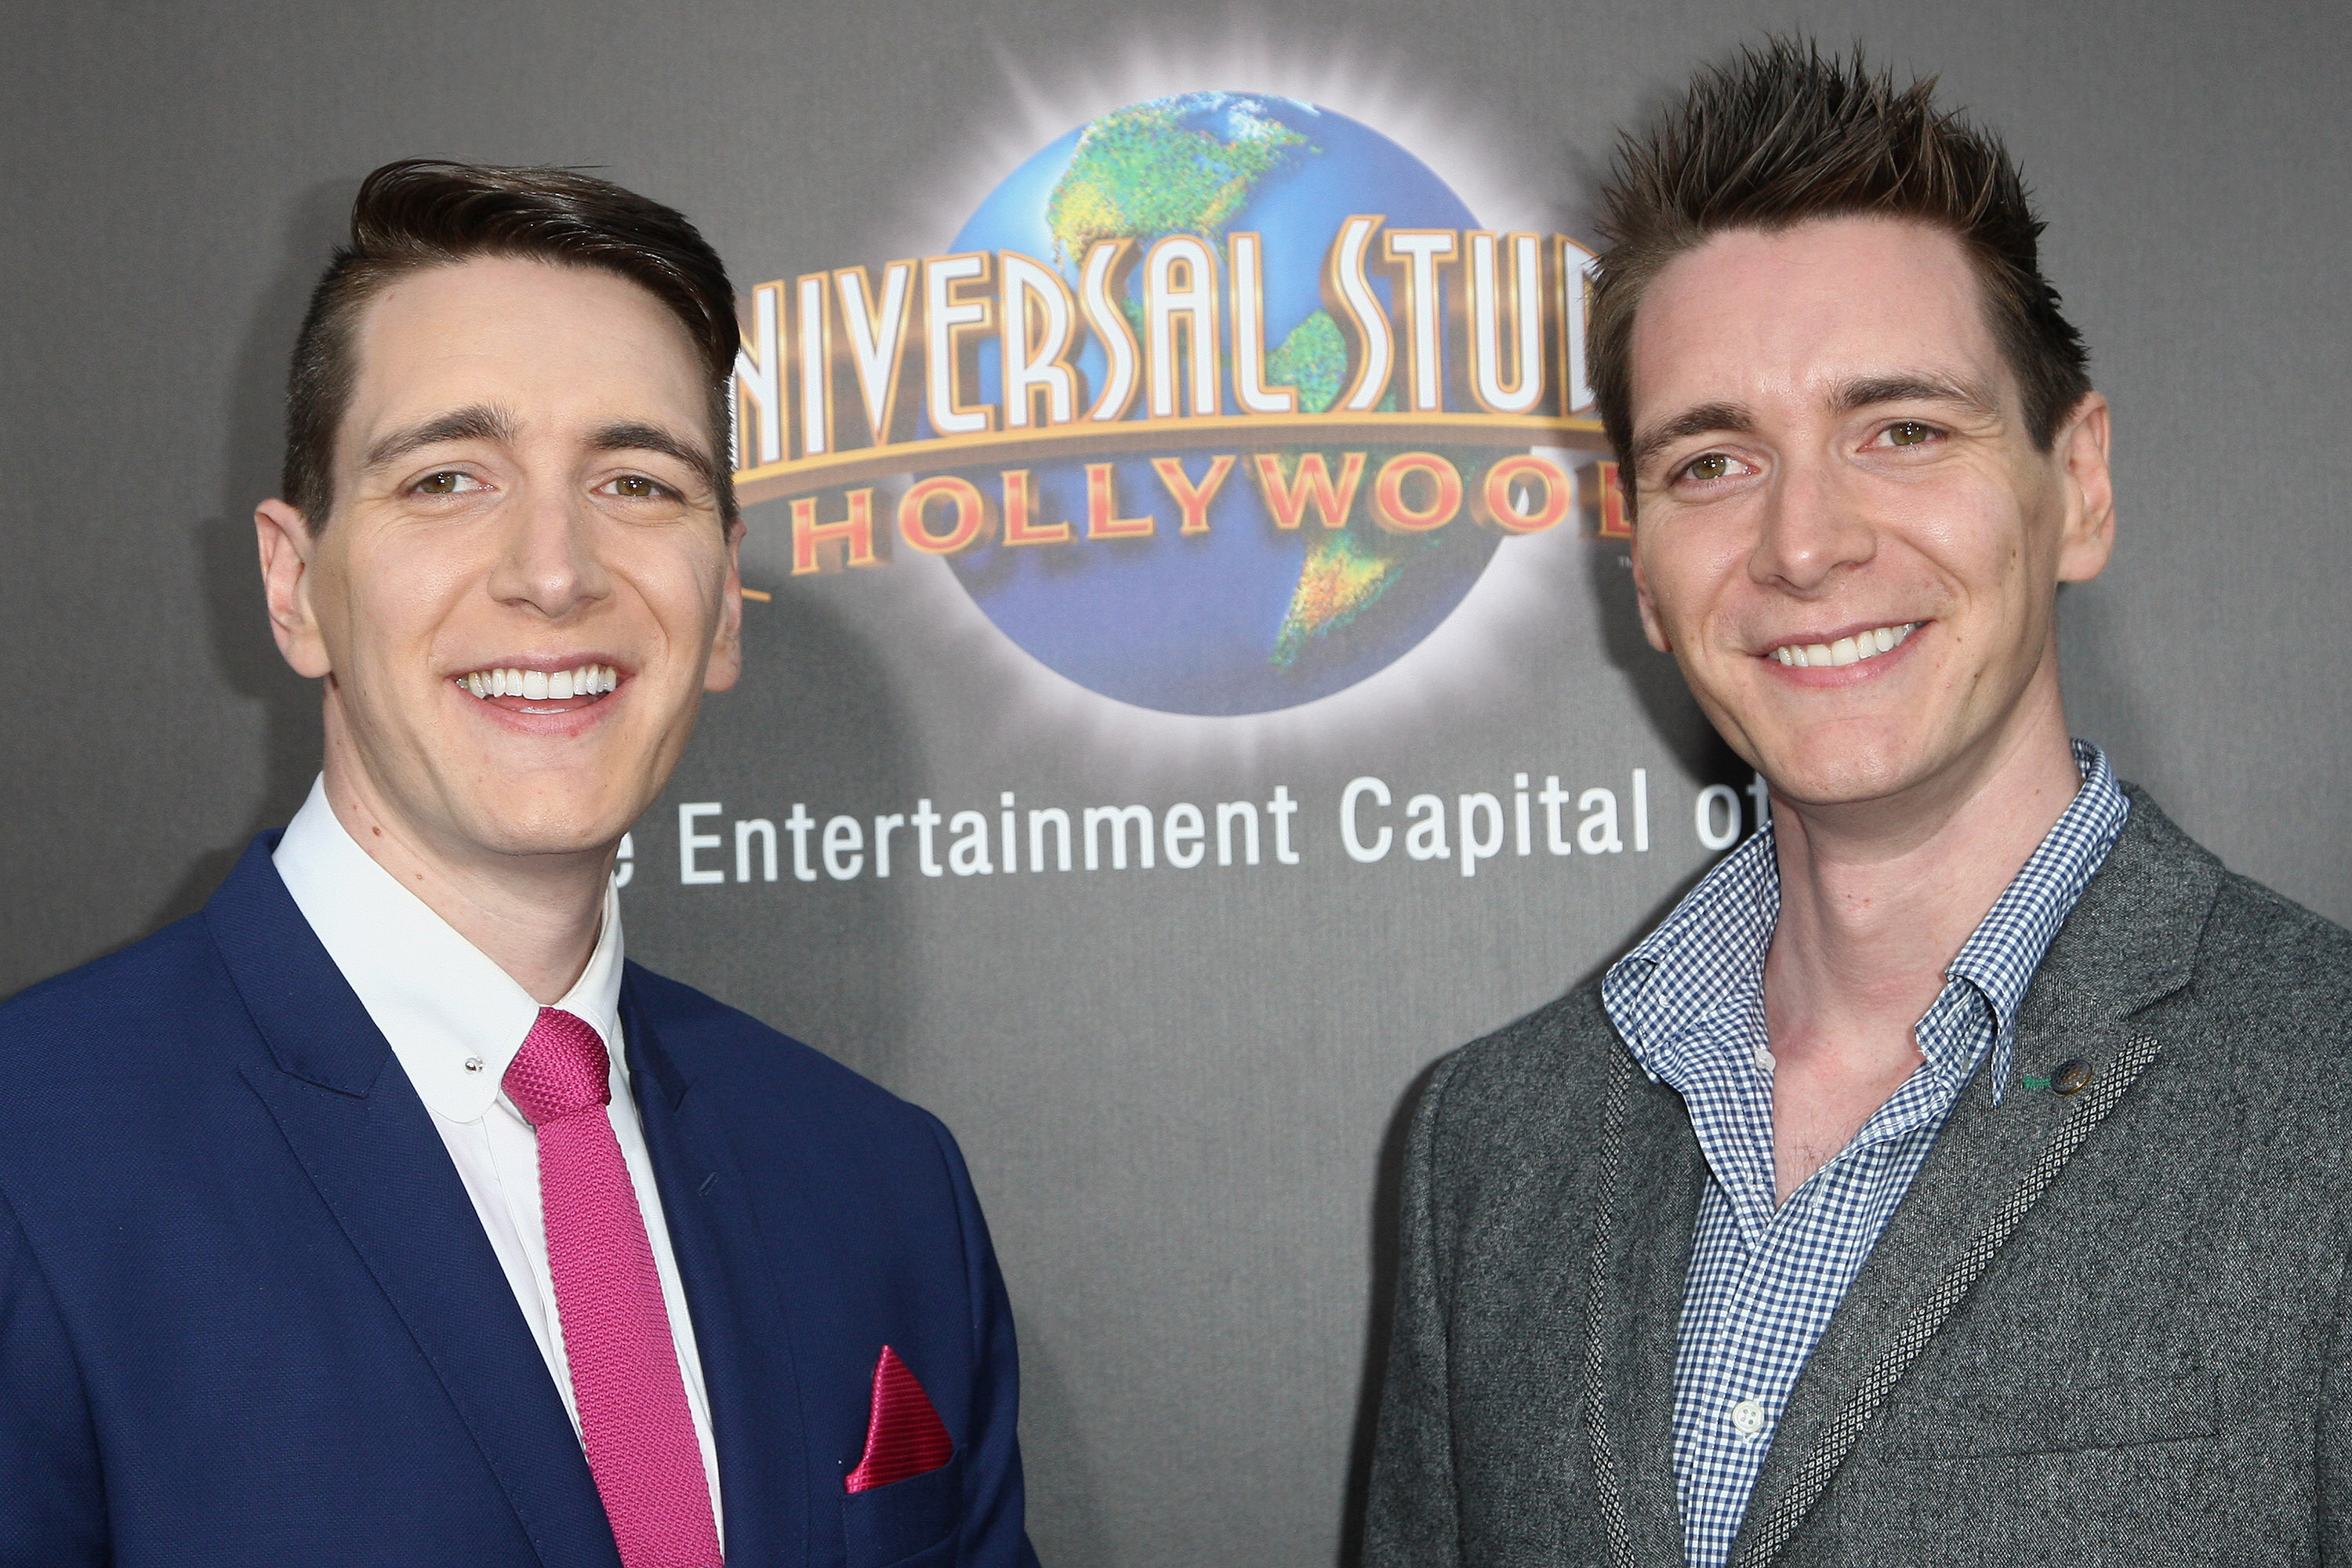 UNIVERSAL CITY, CALIFORNIA - APRIL 05:  Actors Oliver Phelps (L) and James Phelps attend the Universal Studios Hollywood Hosts The Opening Of  The Wizarding World Of Harry Potter  at Universal Studios Hollywood on April 5, 2016 in Universal City, California.  (Photo by Tommaso Boddi/WireImage)